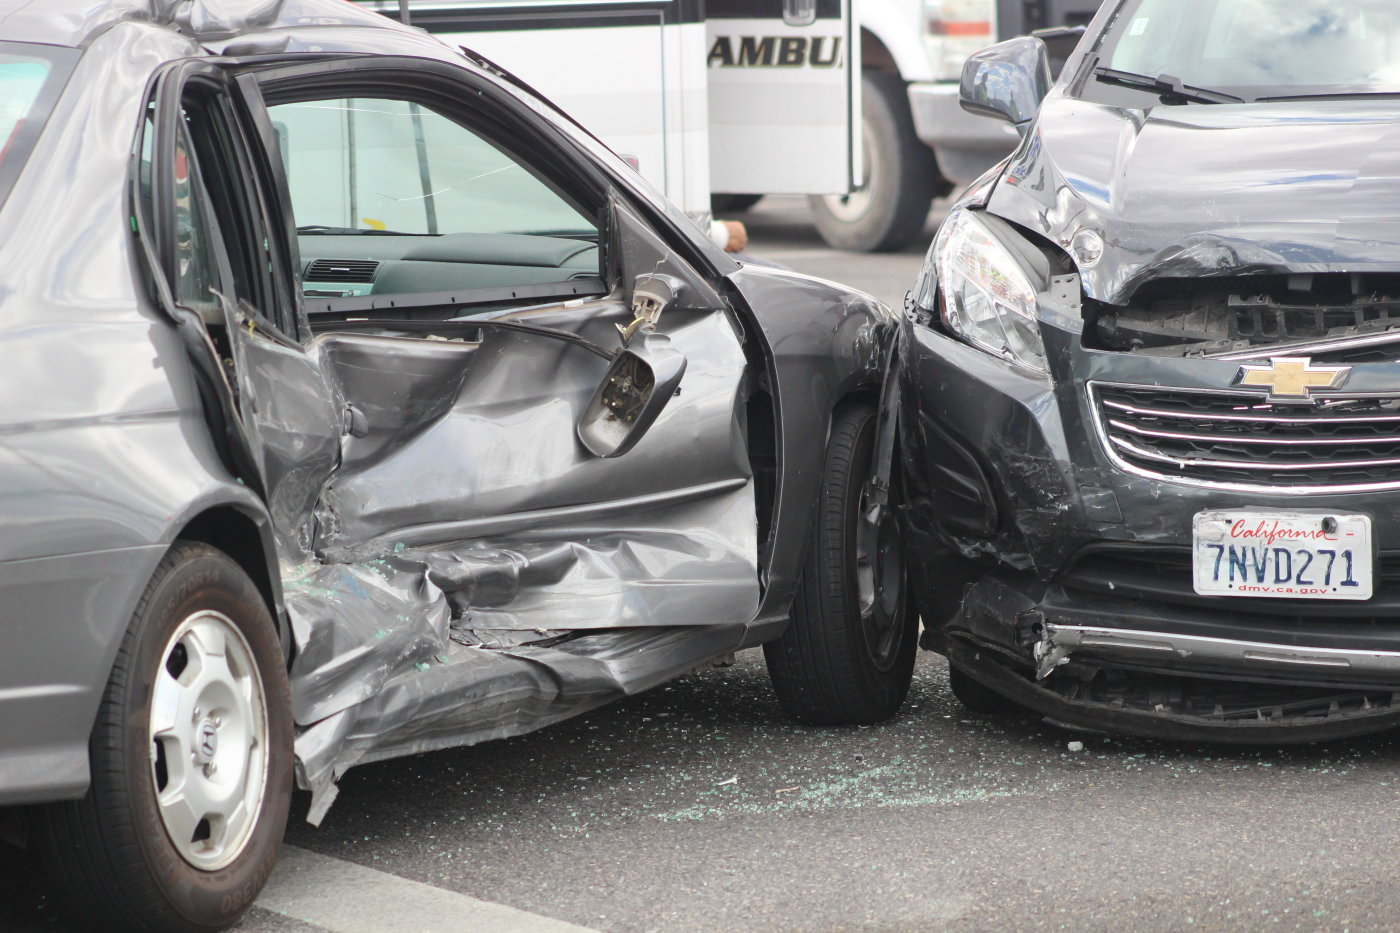 A left turn by the driver of a westbound 2004 Honda Civic while St. George Boulevard was making a left turn onto 1000 East crashed into an eastbound 2016 Chevrolet Traverse SUV, resulting in the passenger side of the Honda getting hammered. No one was taken the hospital as result of the crash, and the driver of the Honda was cited for failure to yield, St. George Police Sgt. Choli Ence said, St. George, Utah, Sept. 2, 2016 | Photo by Mori Kessler, St. George News